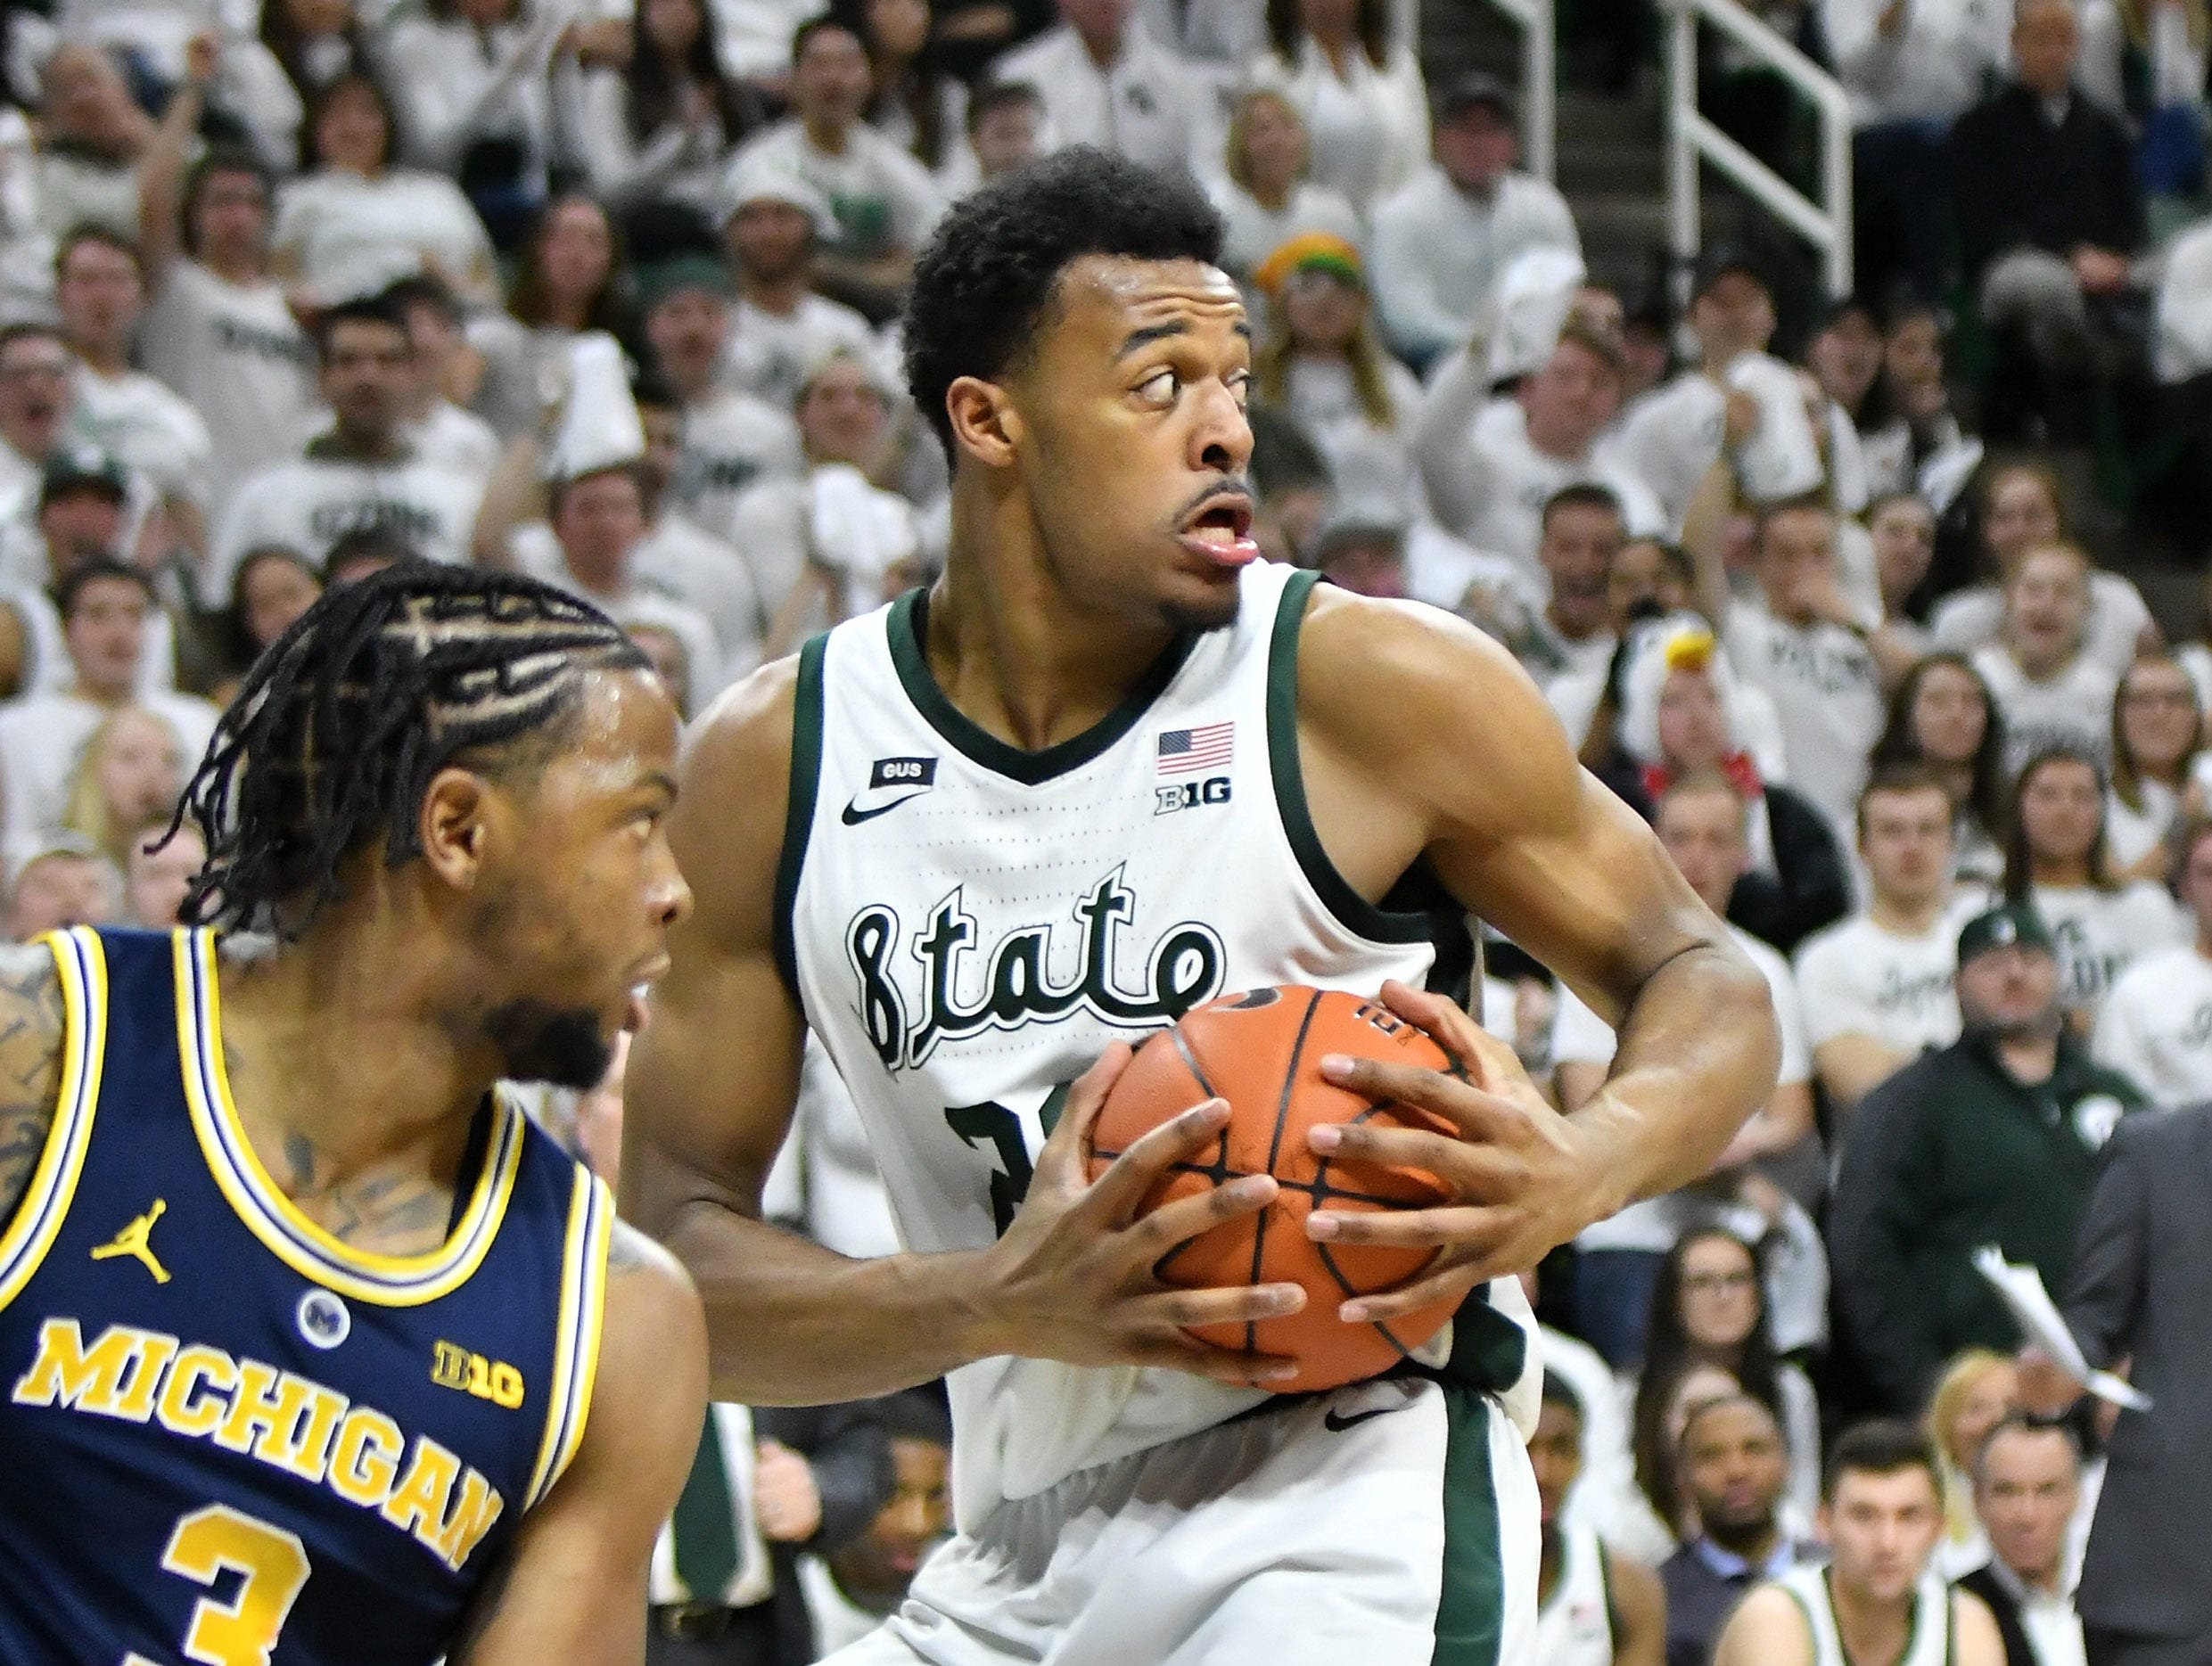 Michigan State forward Xavier Tillman (23) comes up with the ball after blocking  a shot by Michigan guard Zavier Simpson (3) in the first half.   Michigan vs Michigan State at the Breslin Center in East Lansing, Mich. on Mar. 9, 2019.  (Robin Buckson / Detroit News)